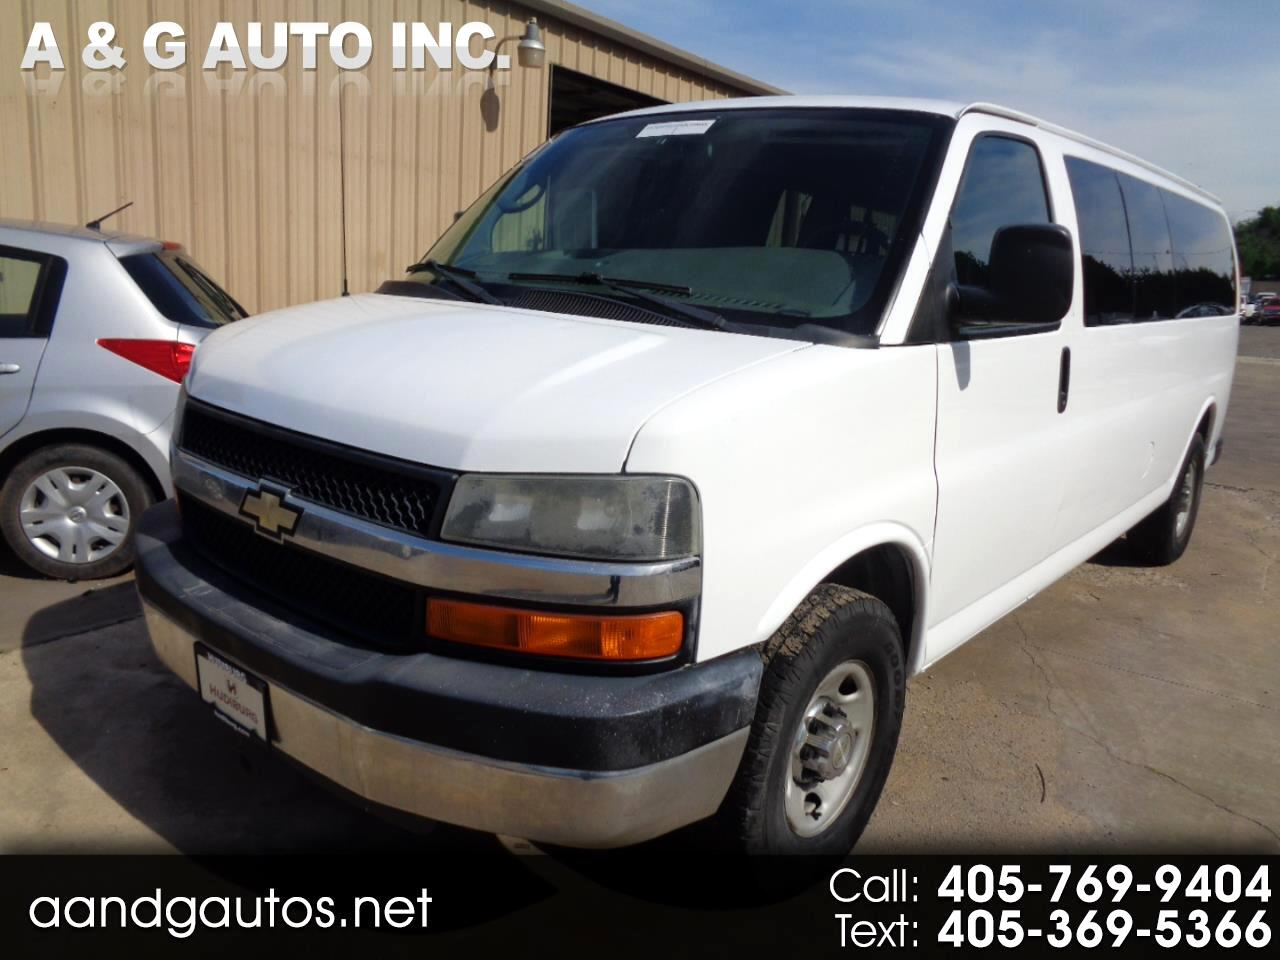 2009 Chevrolet Express LS 3500 Extended